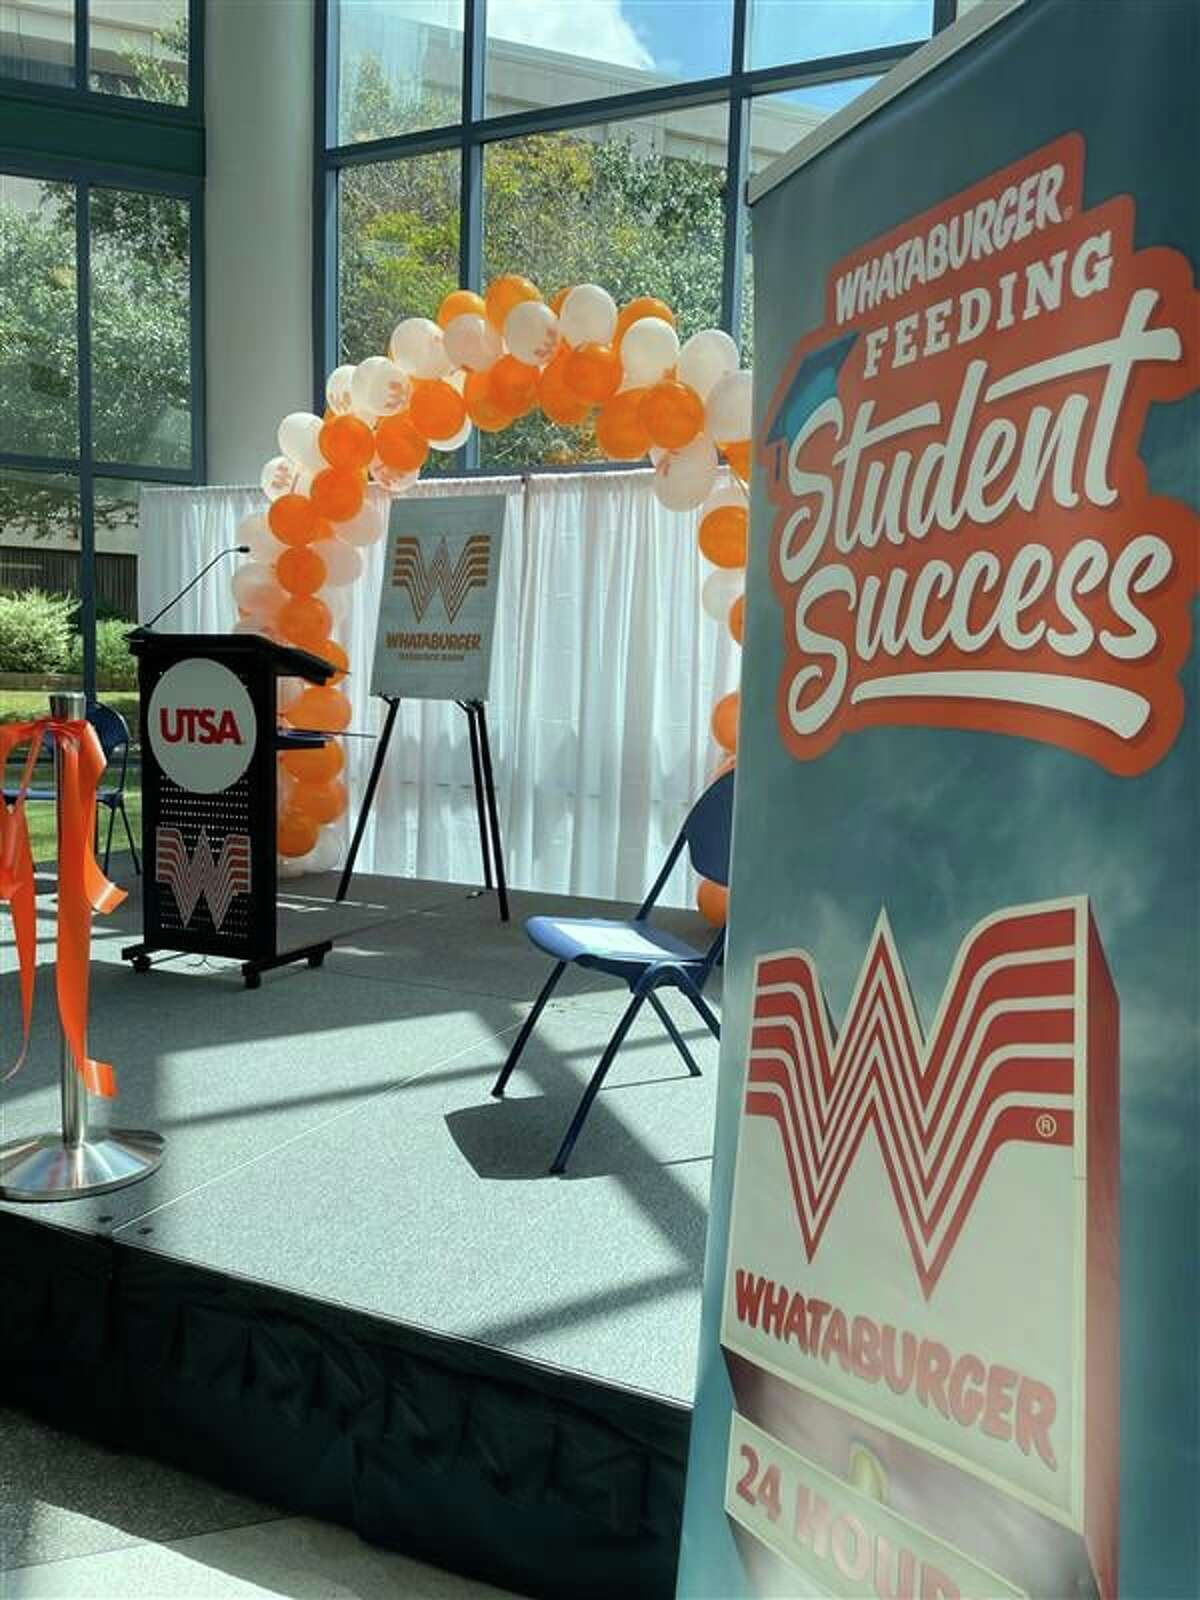 Whataburger partnered with the San Antonio Food Bank to help the University of Texas at San Antonio reopen the main campus studentresource room. The main campus provision, now officially named the UTSA Whataburger Resource Room, provides food items, toiletries, school supplies, and essentials free of charge year-round for Roadrunners.